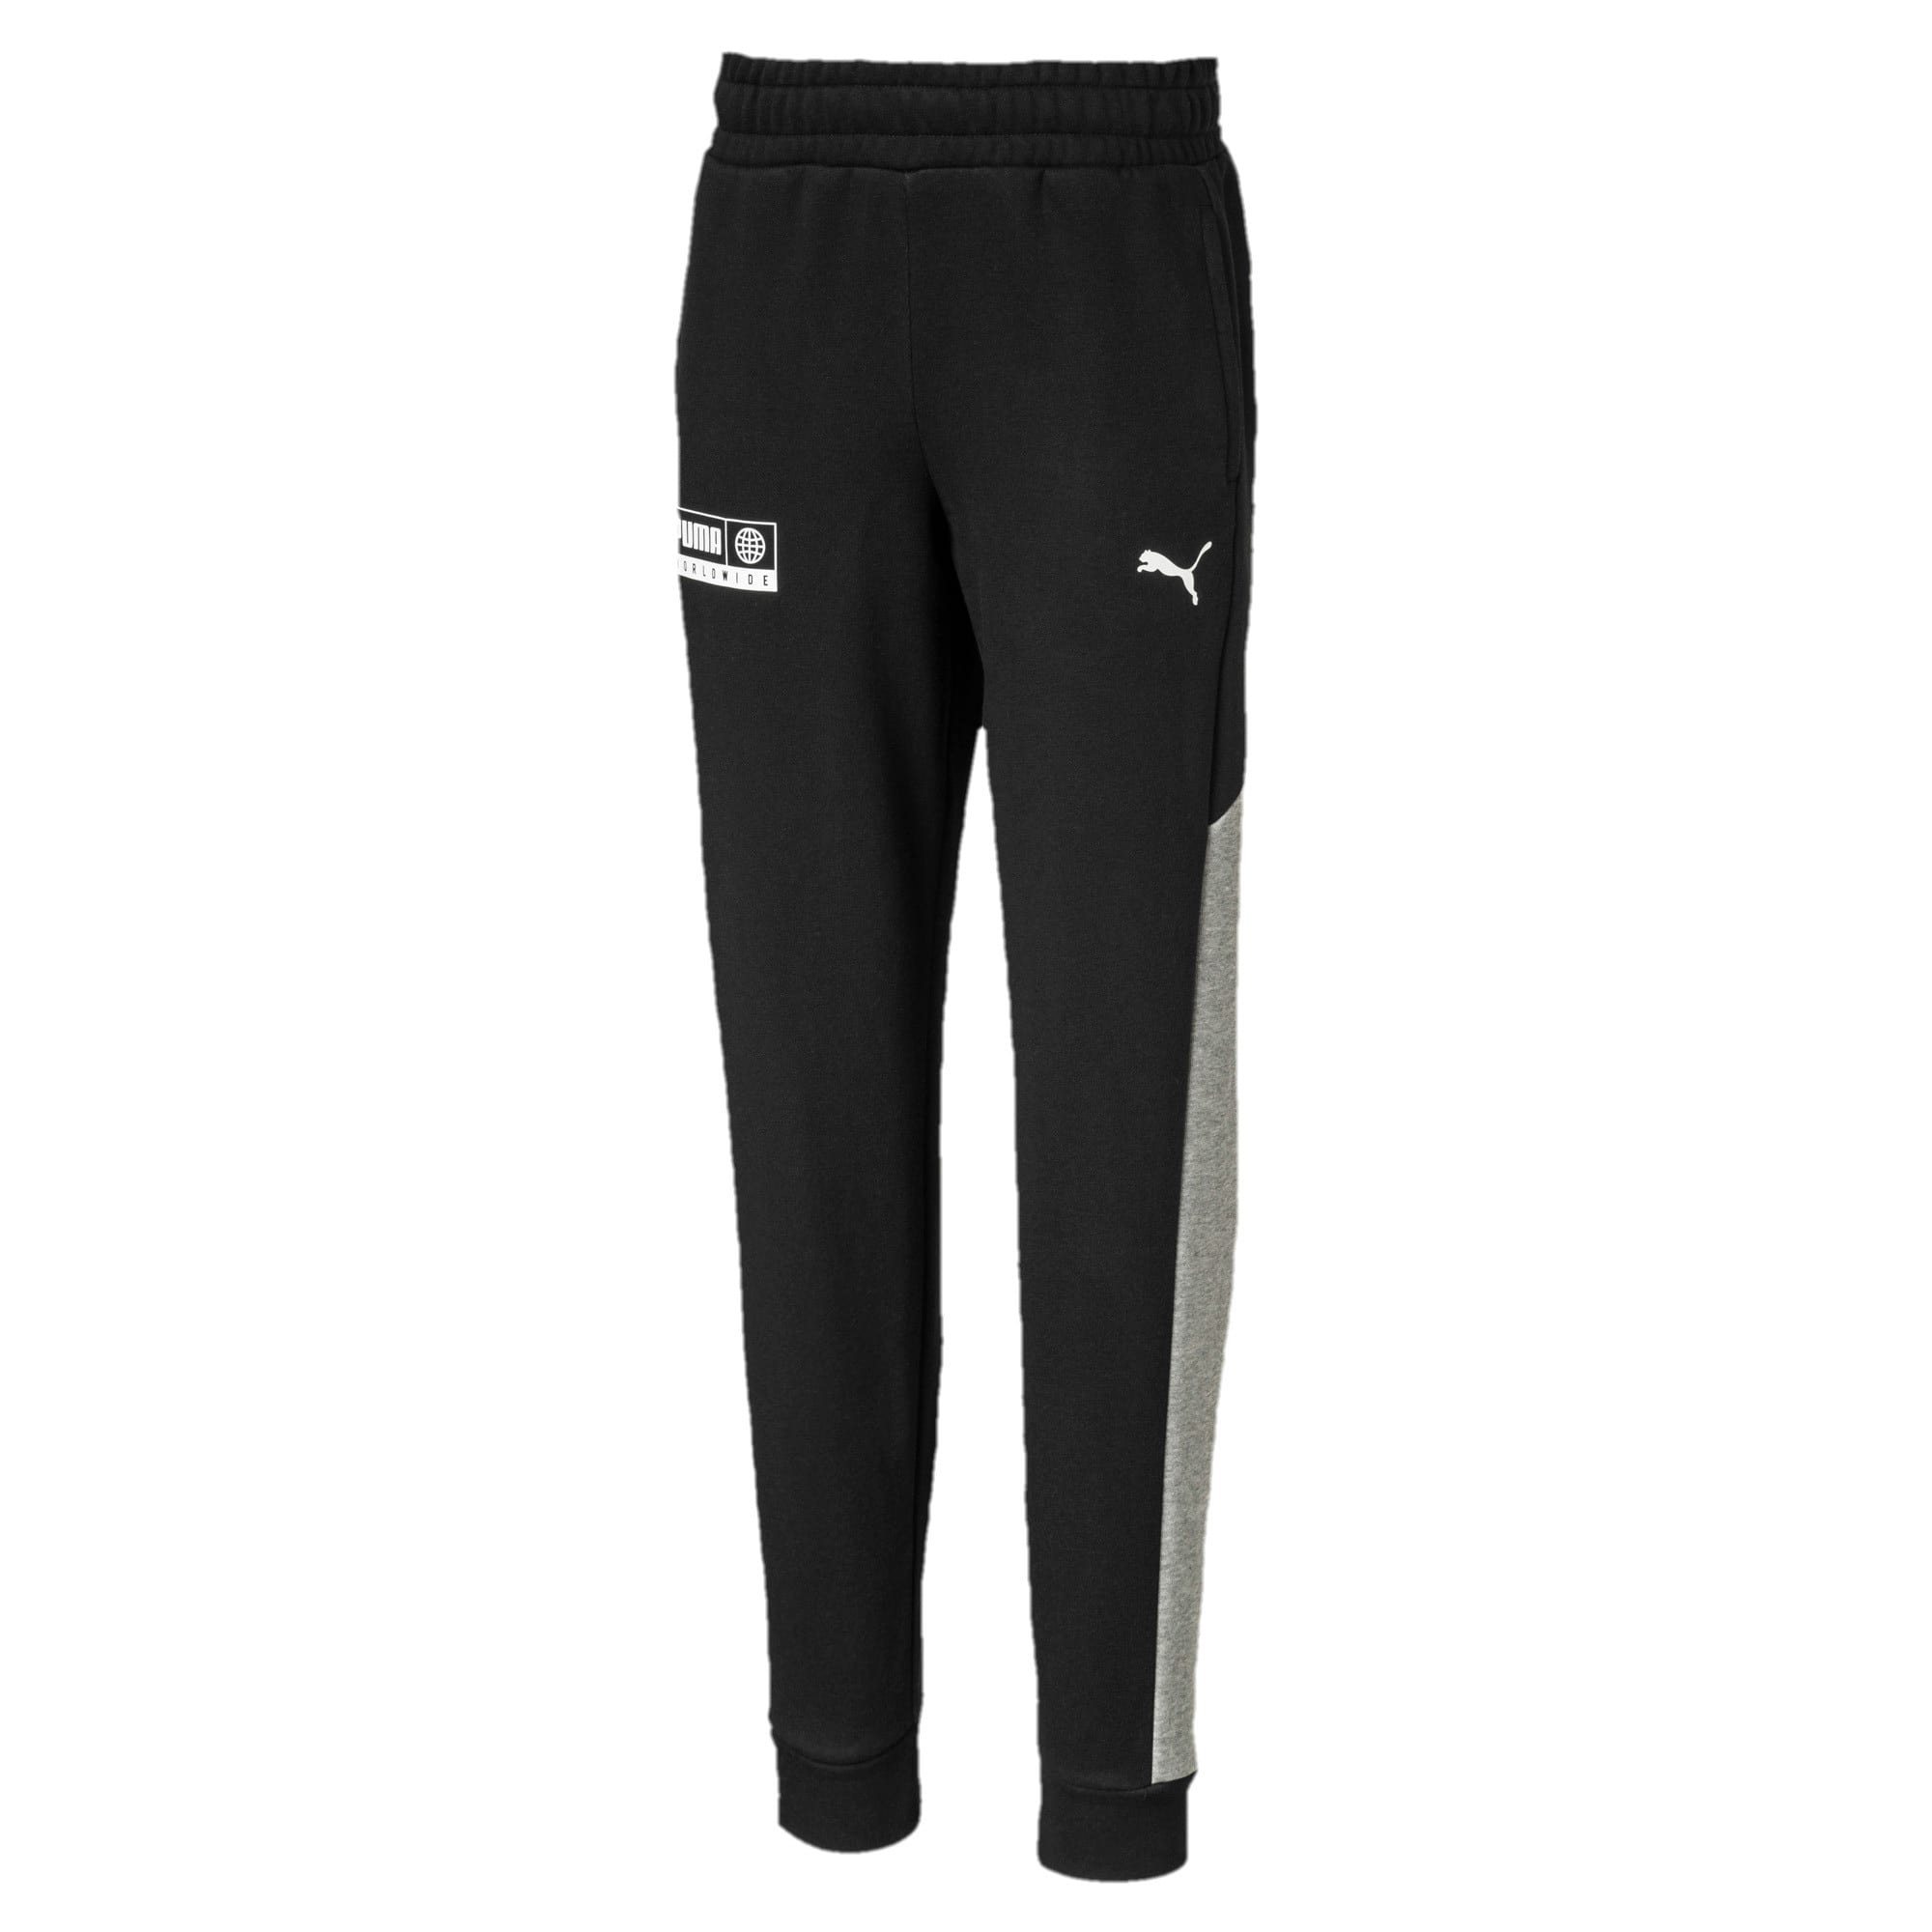 Thumbnail 1 of Alpha Knitted Boys' Sweatpants, Puma Black, medium